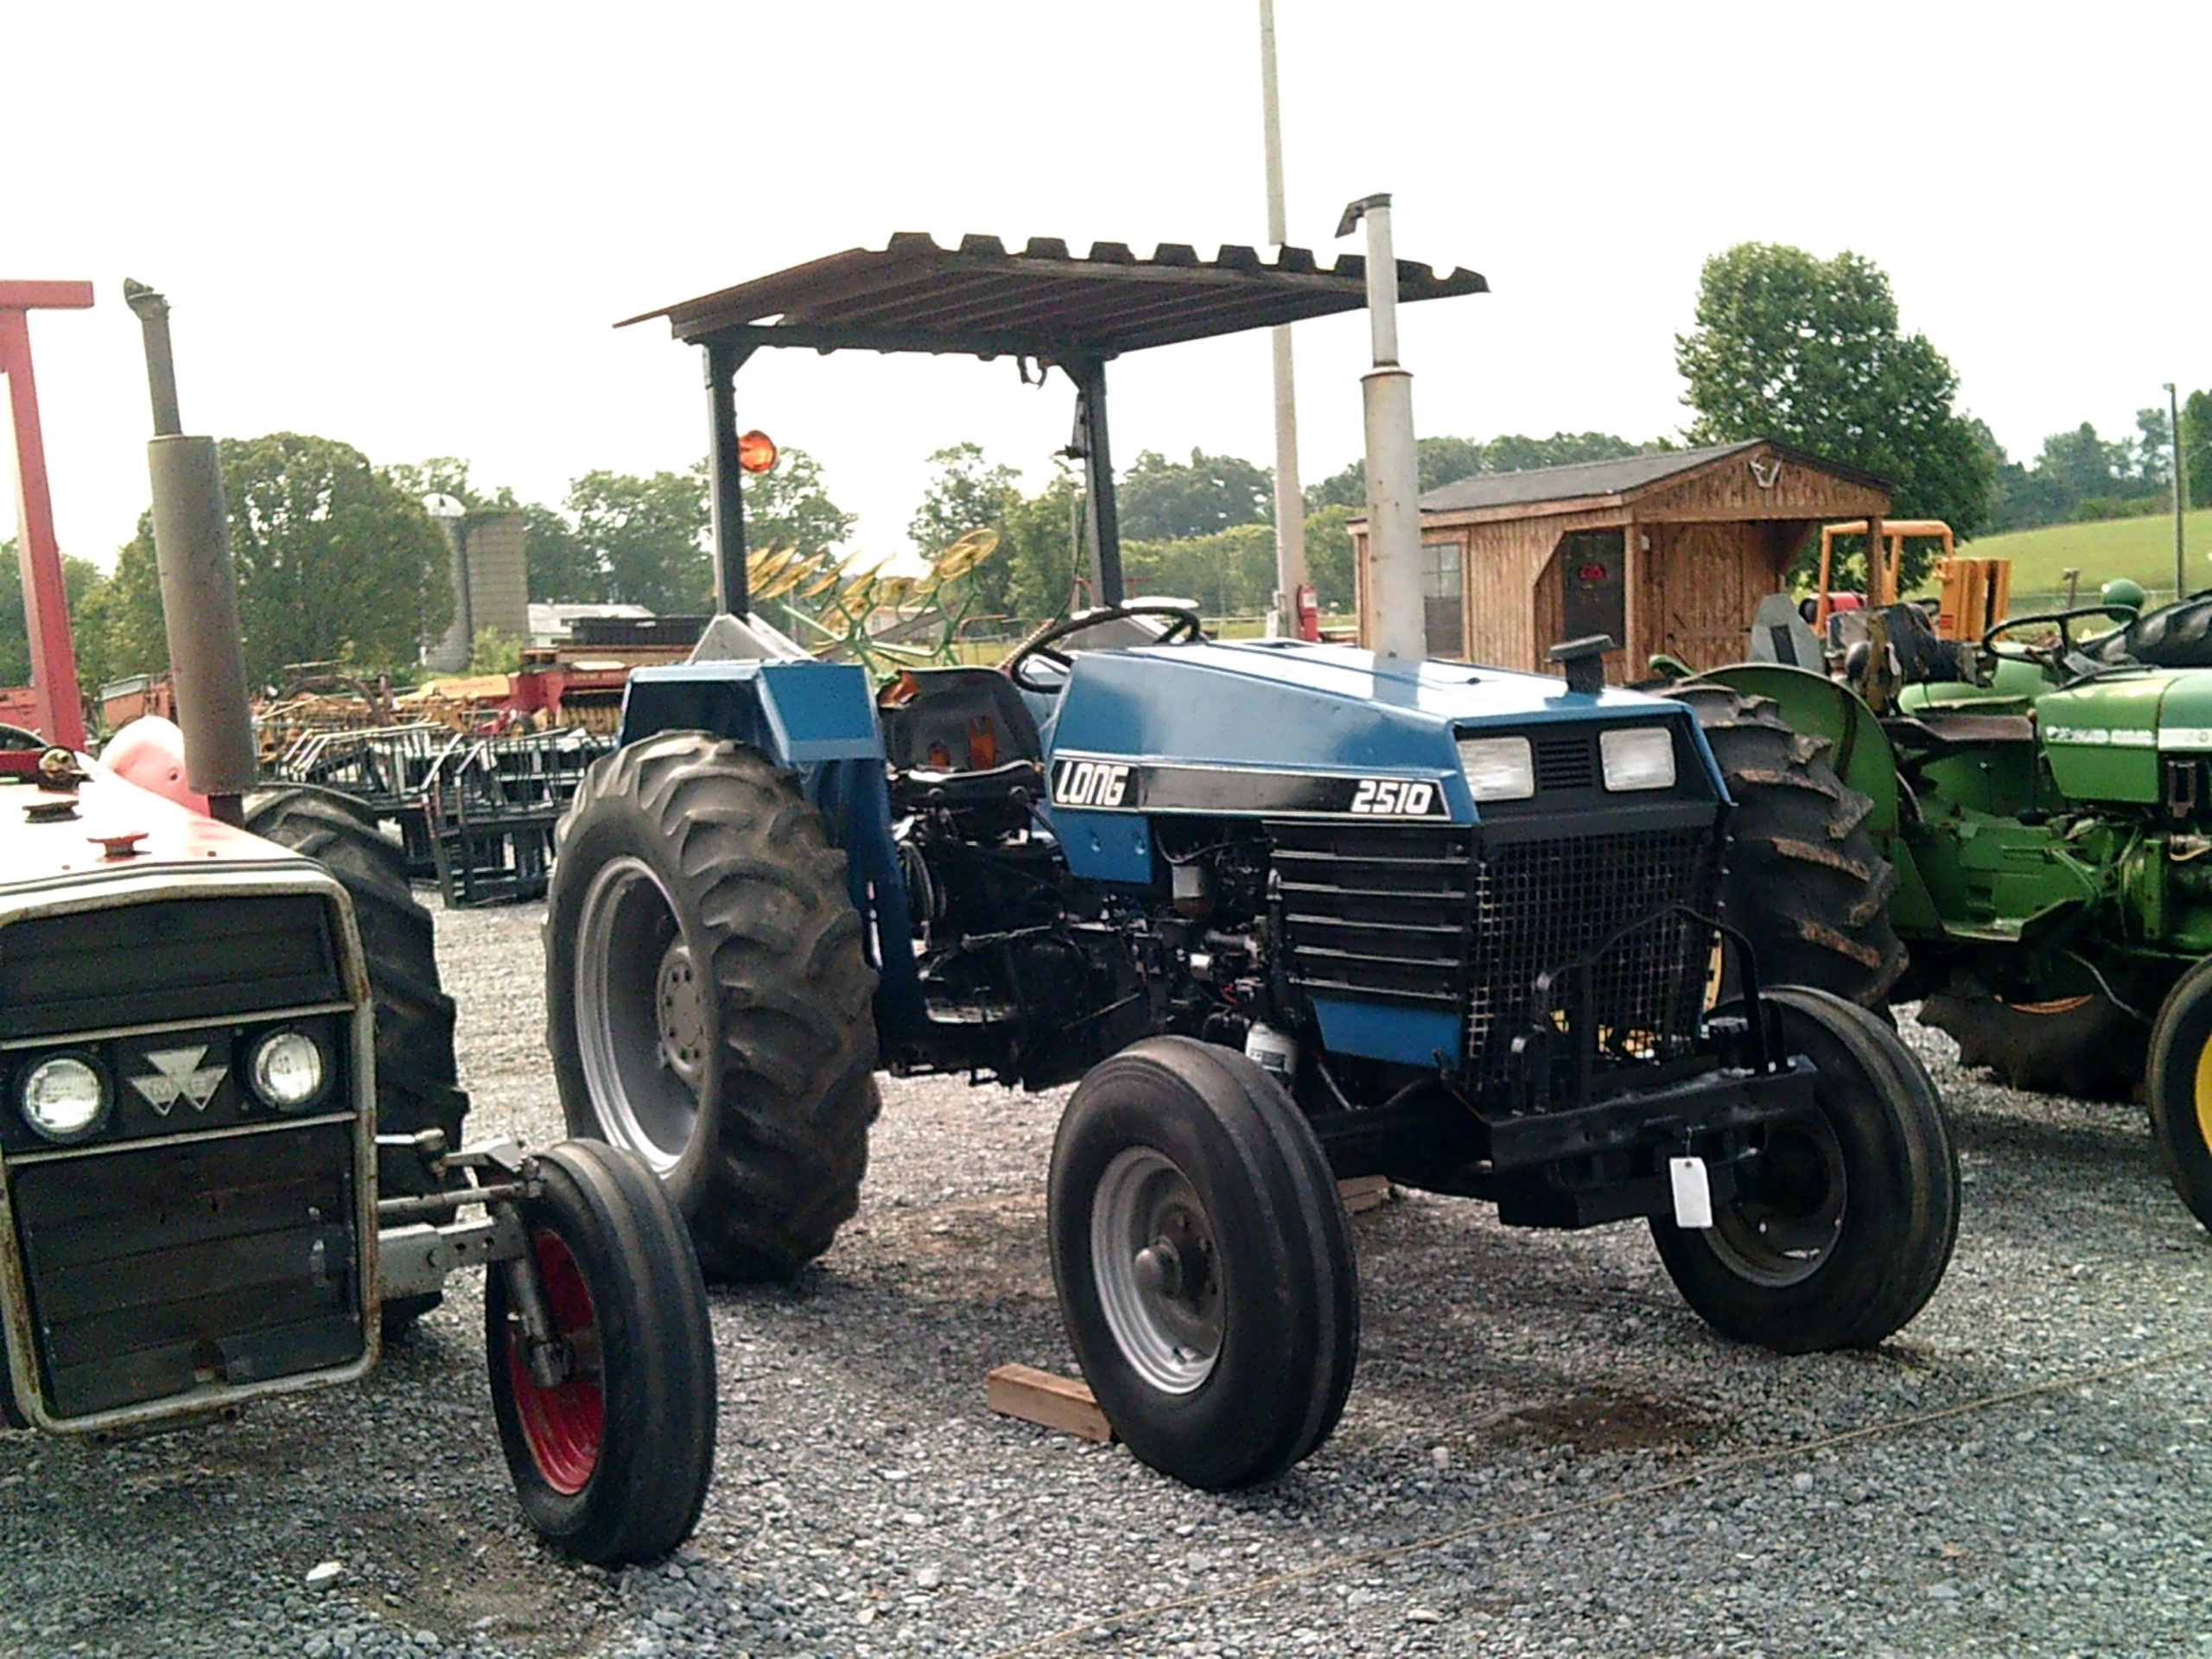 LONG 2510 TRACTOR Image